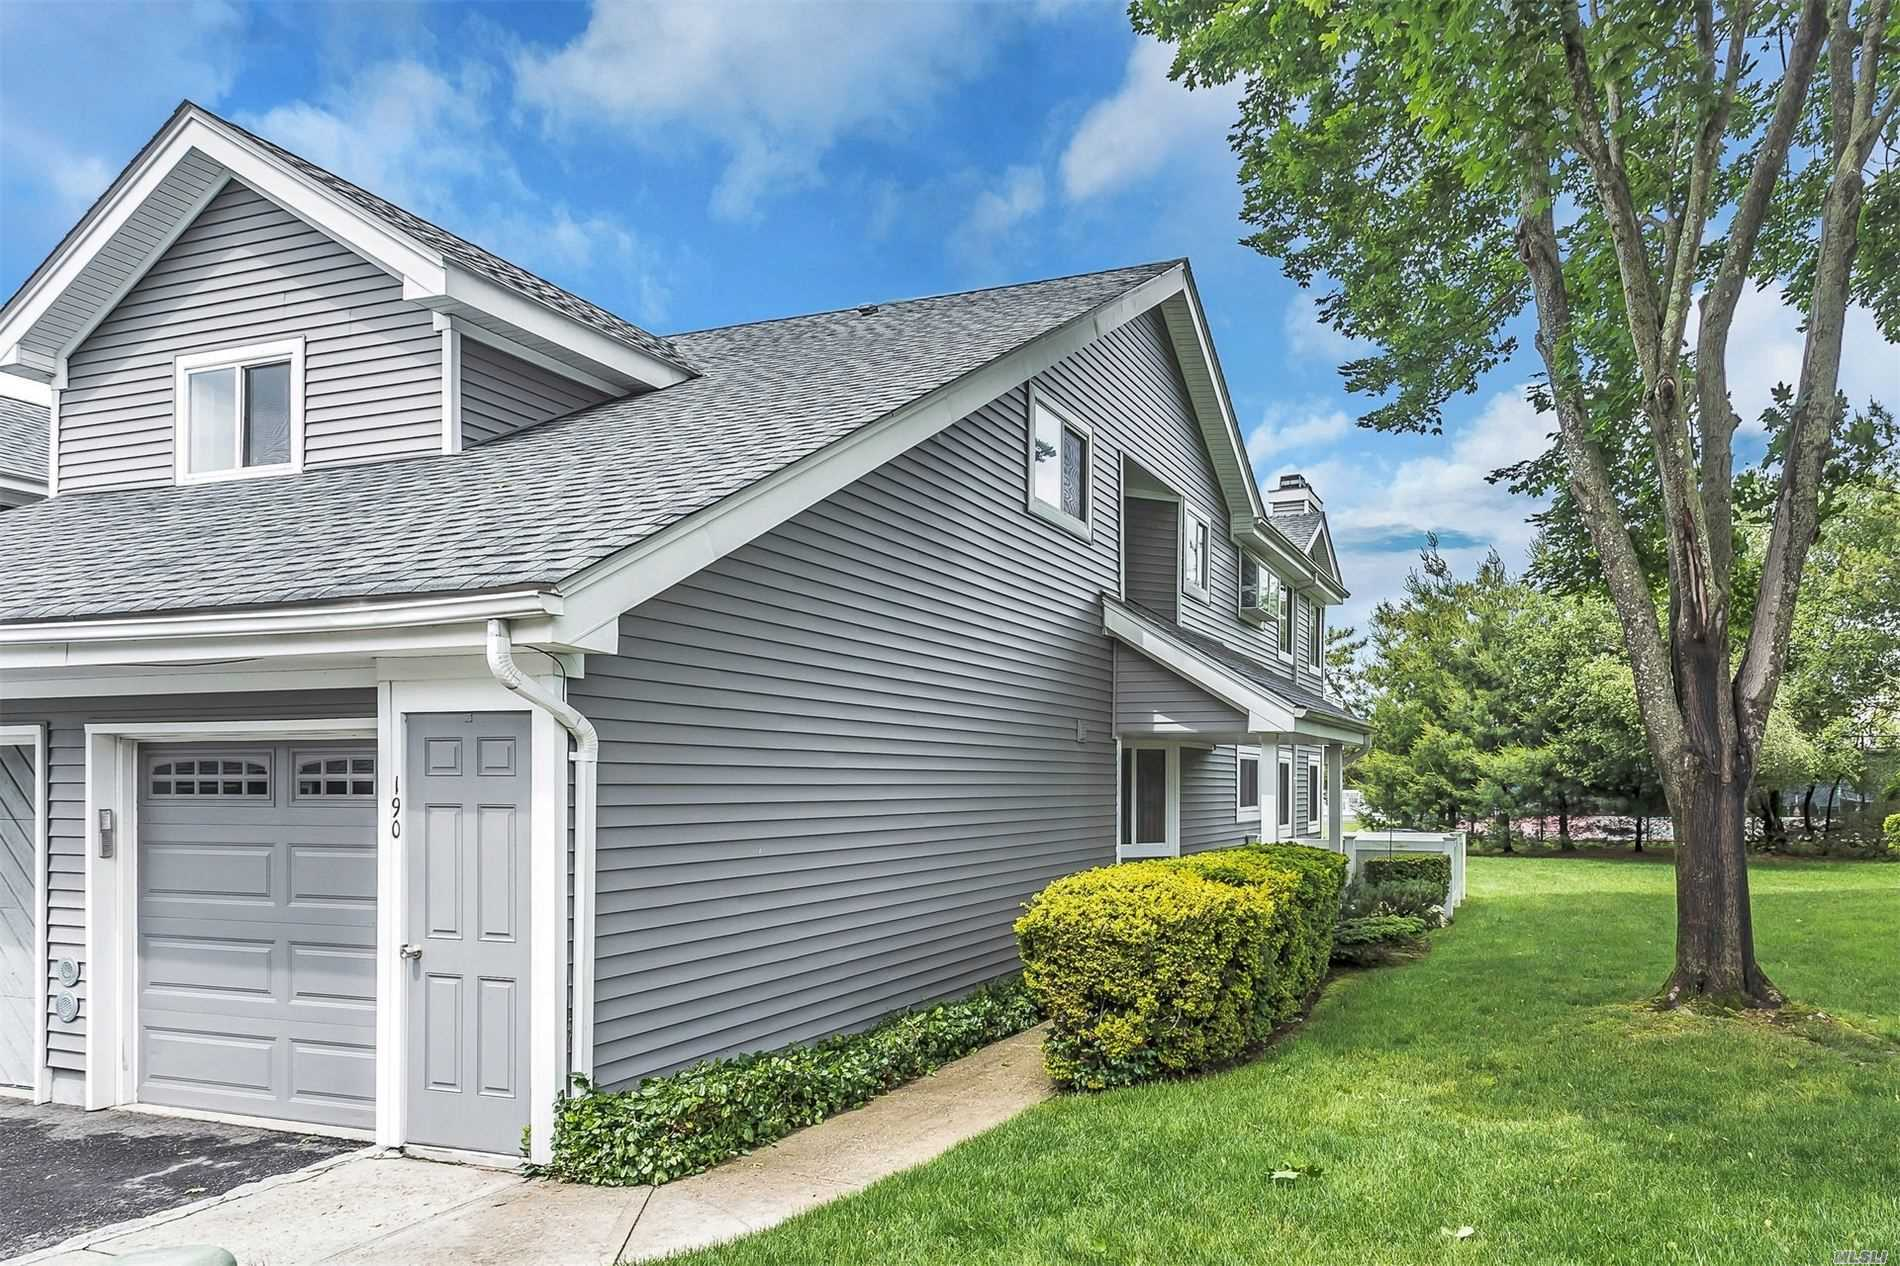 190 River Dr - Moriches, New York